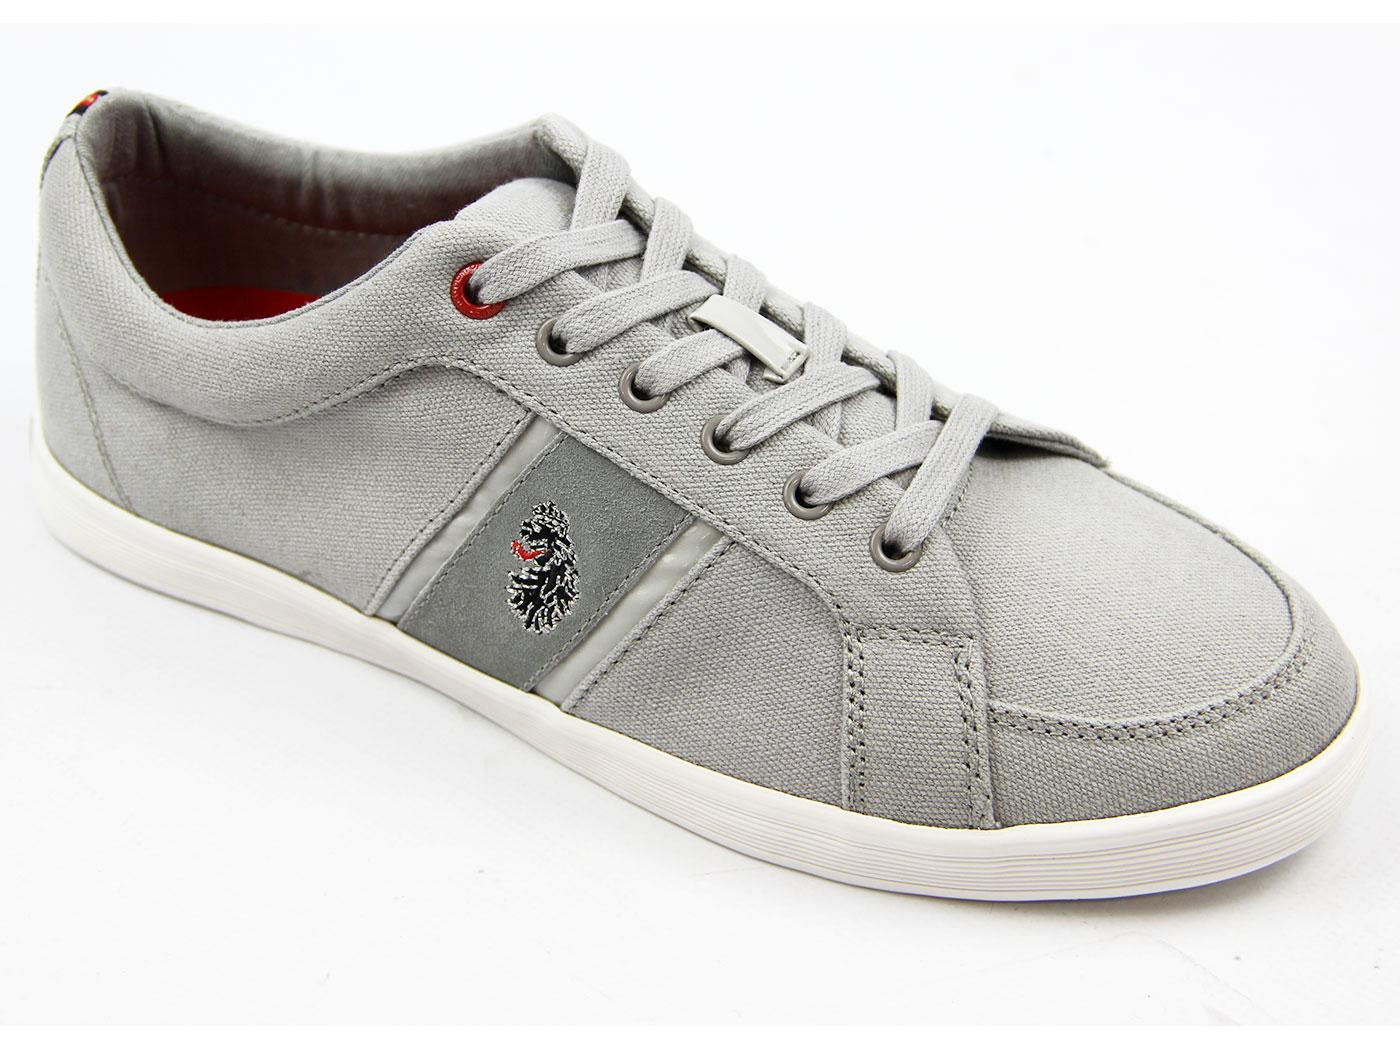 Dewey LUKE 1977 Retro Lace Indie Canvas Trainers G